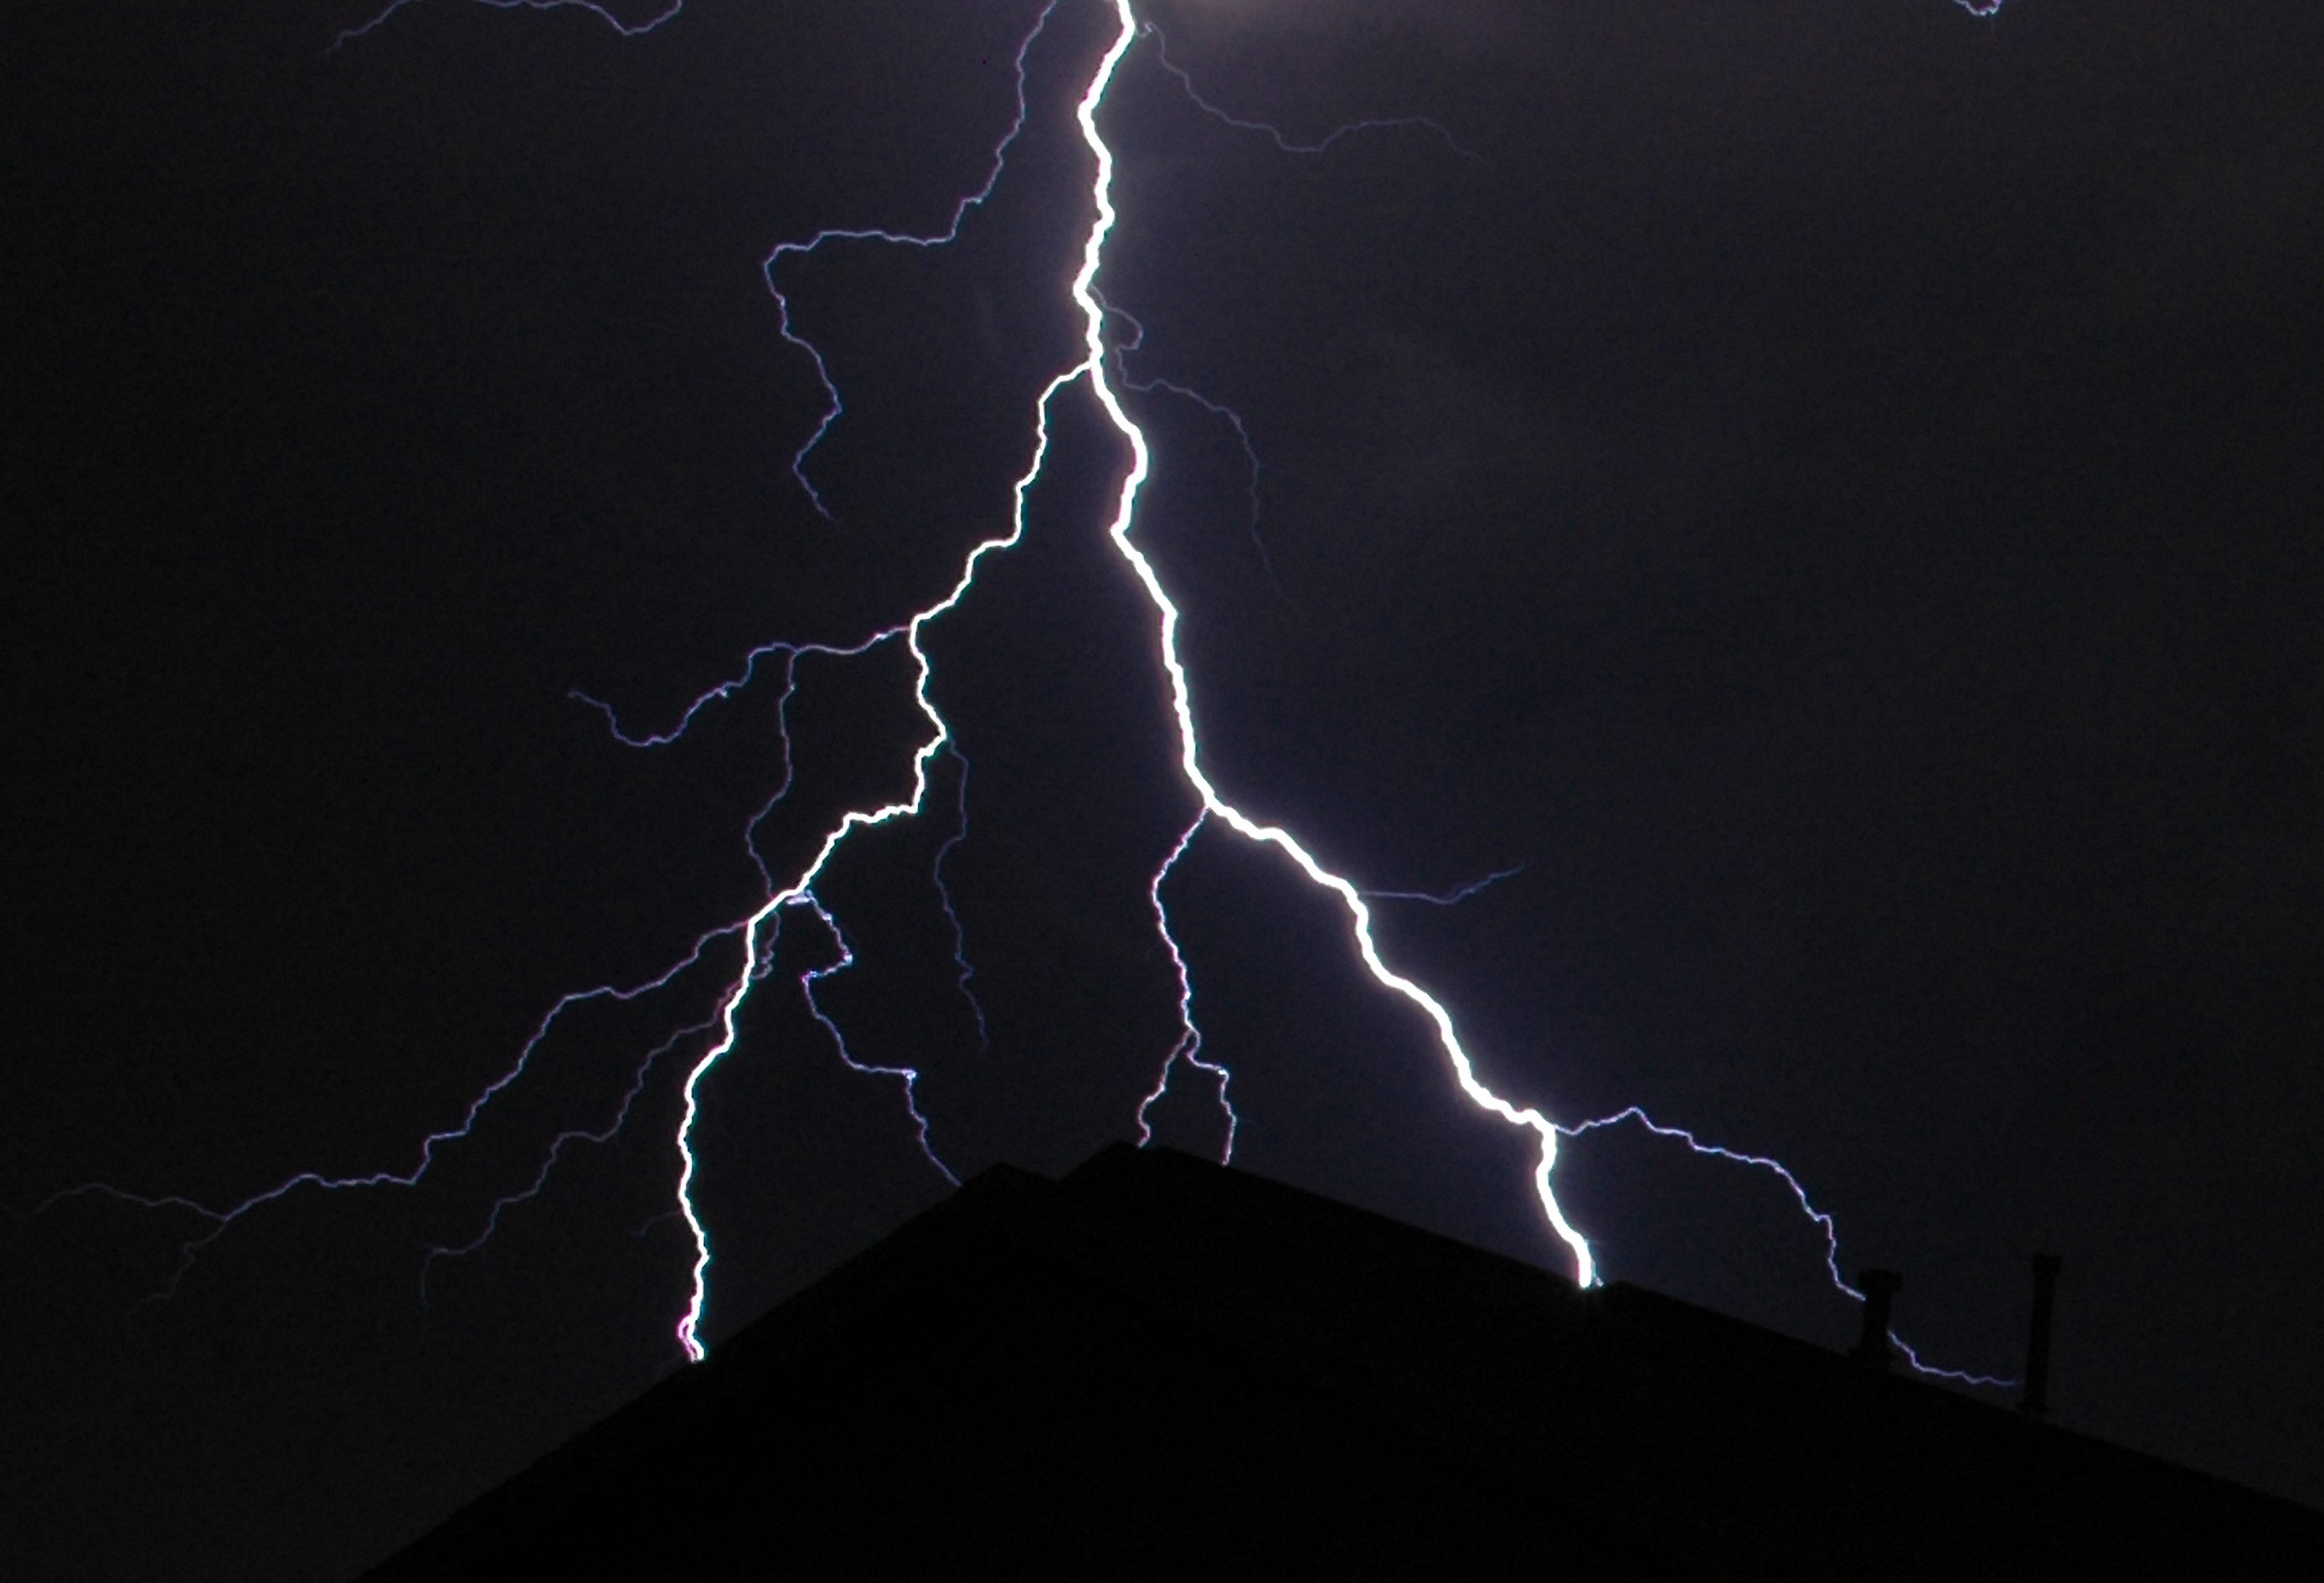 Lightning Damage? Here's What to Do